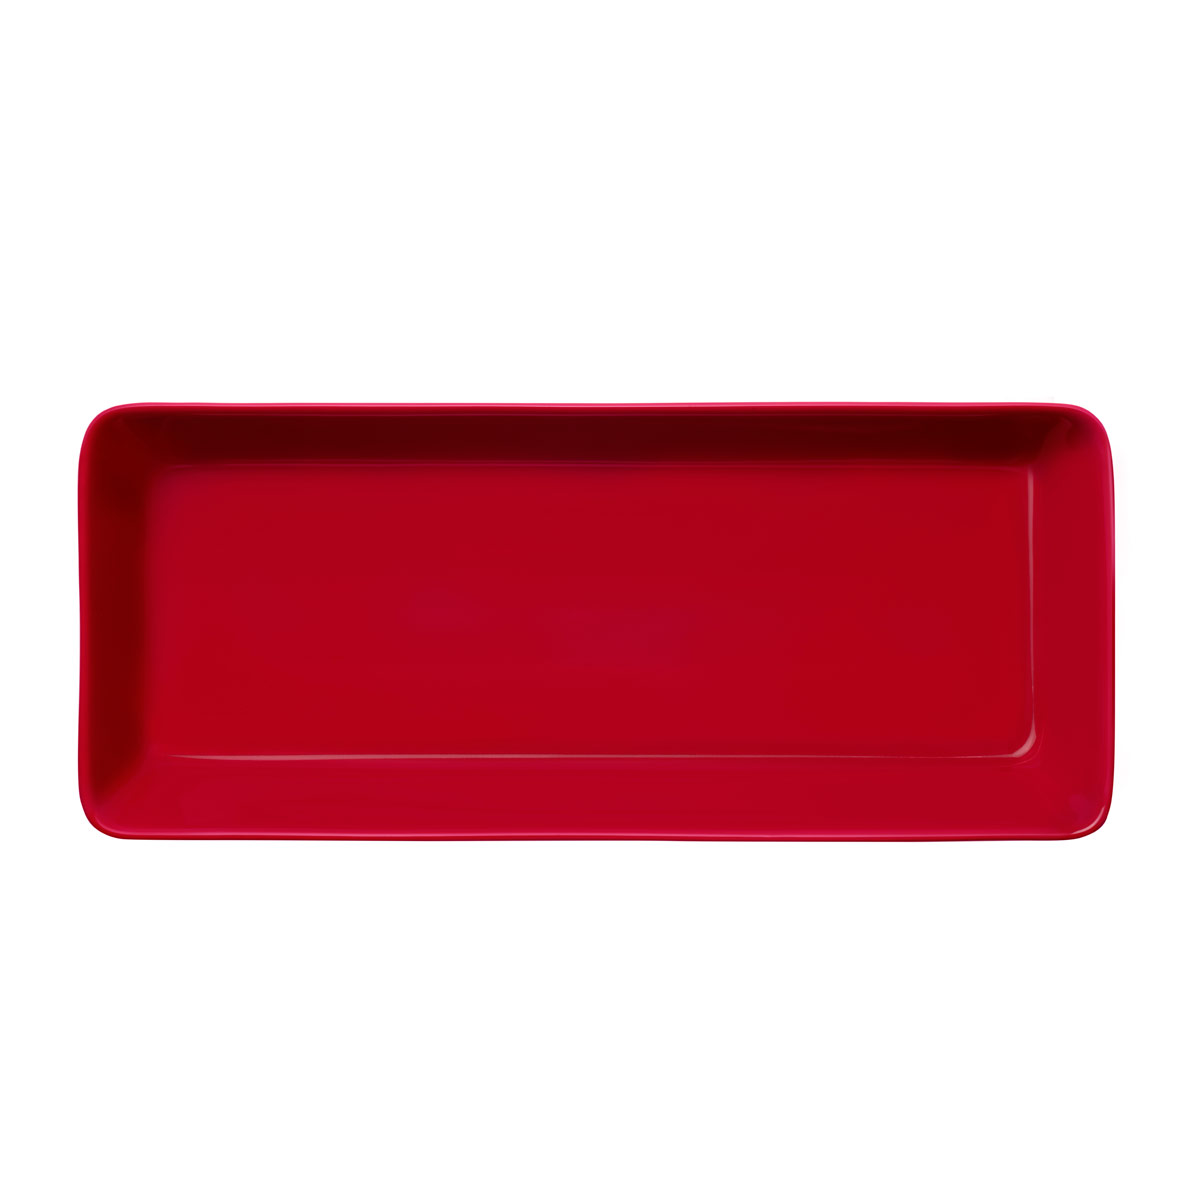 iittala teema red serving platter iittala sale. Black Bedroom Furniture Sets. Home Design Ideas